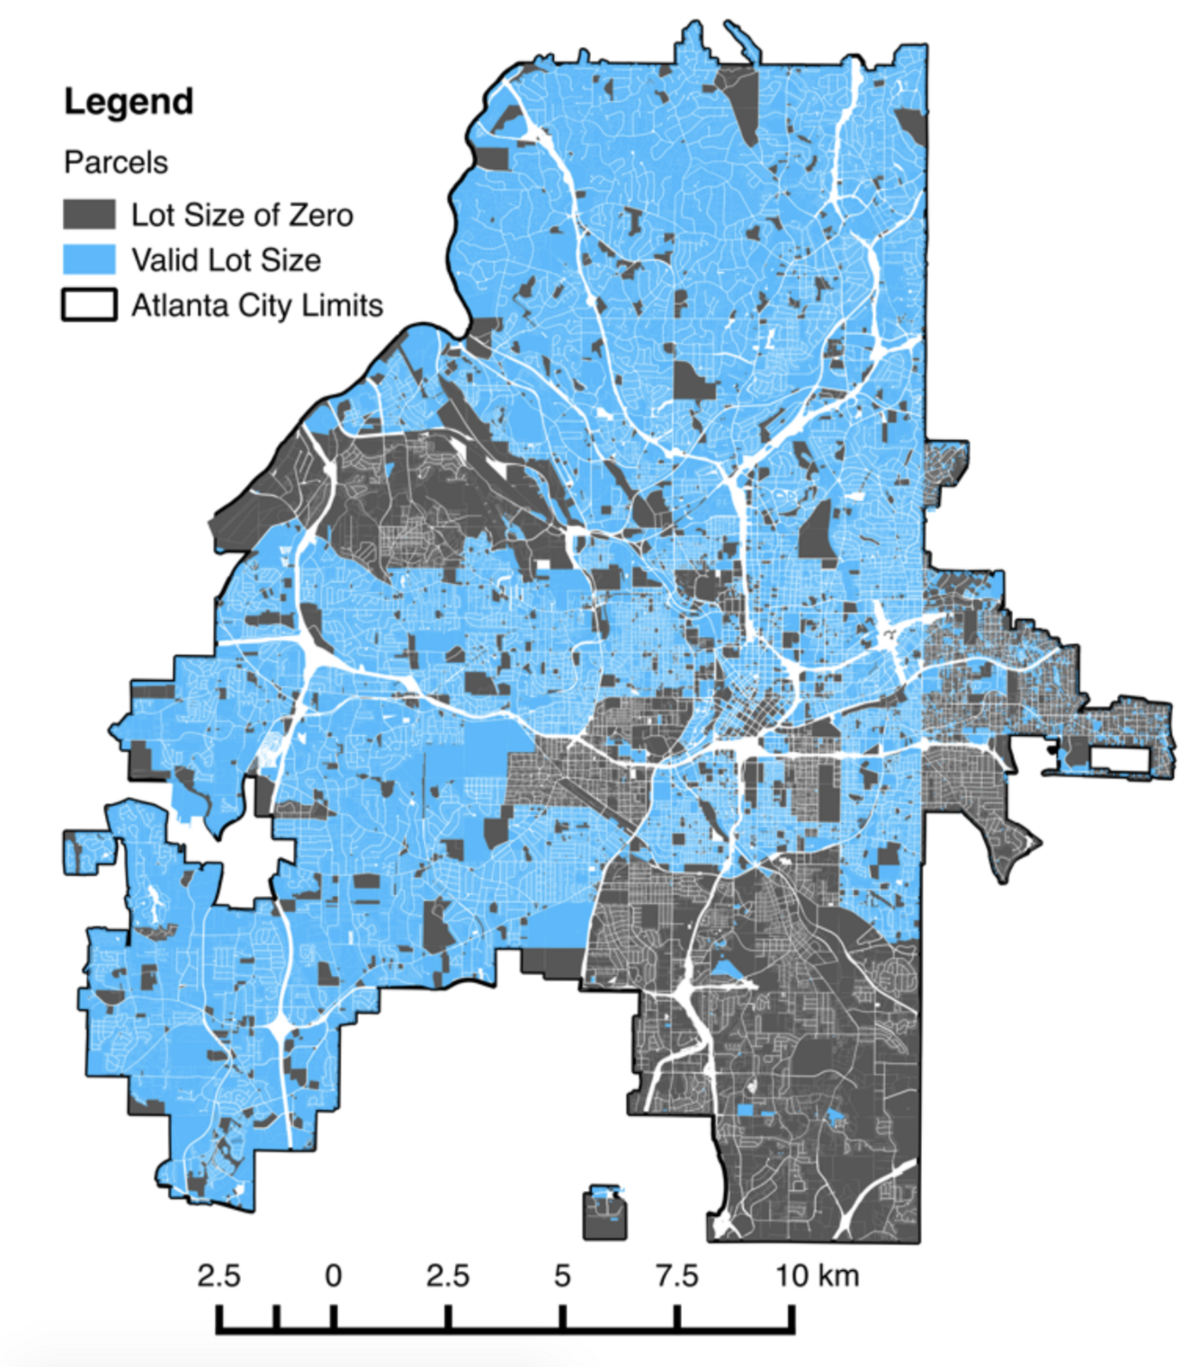 Is zoning to blame for Atlanta's low building density? on